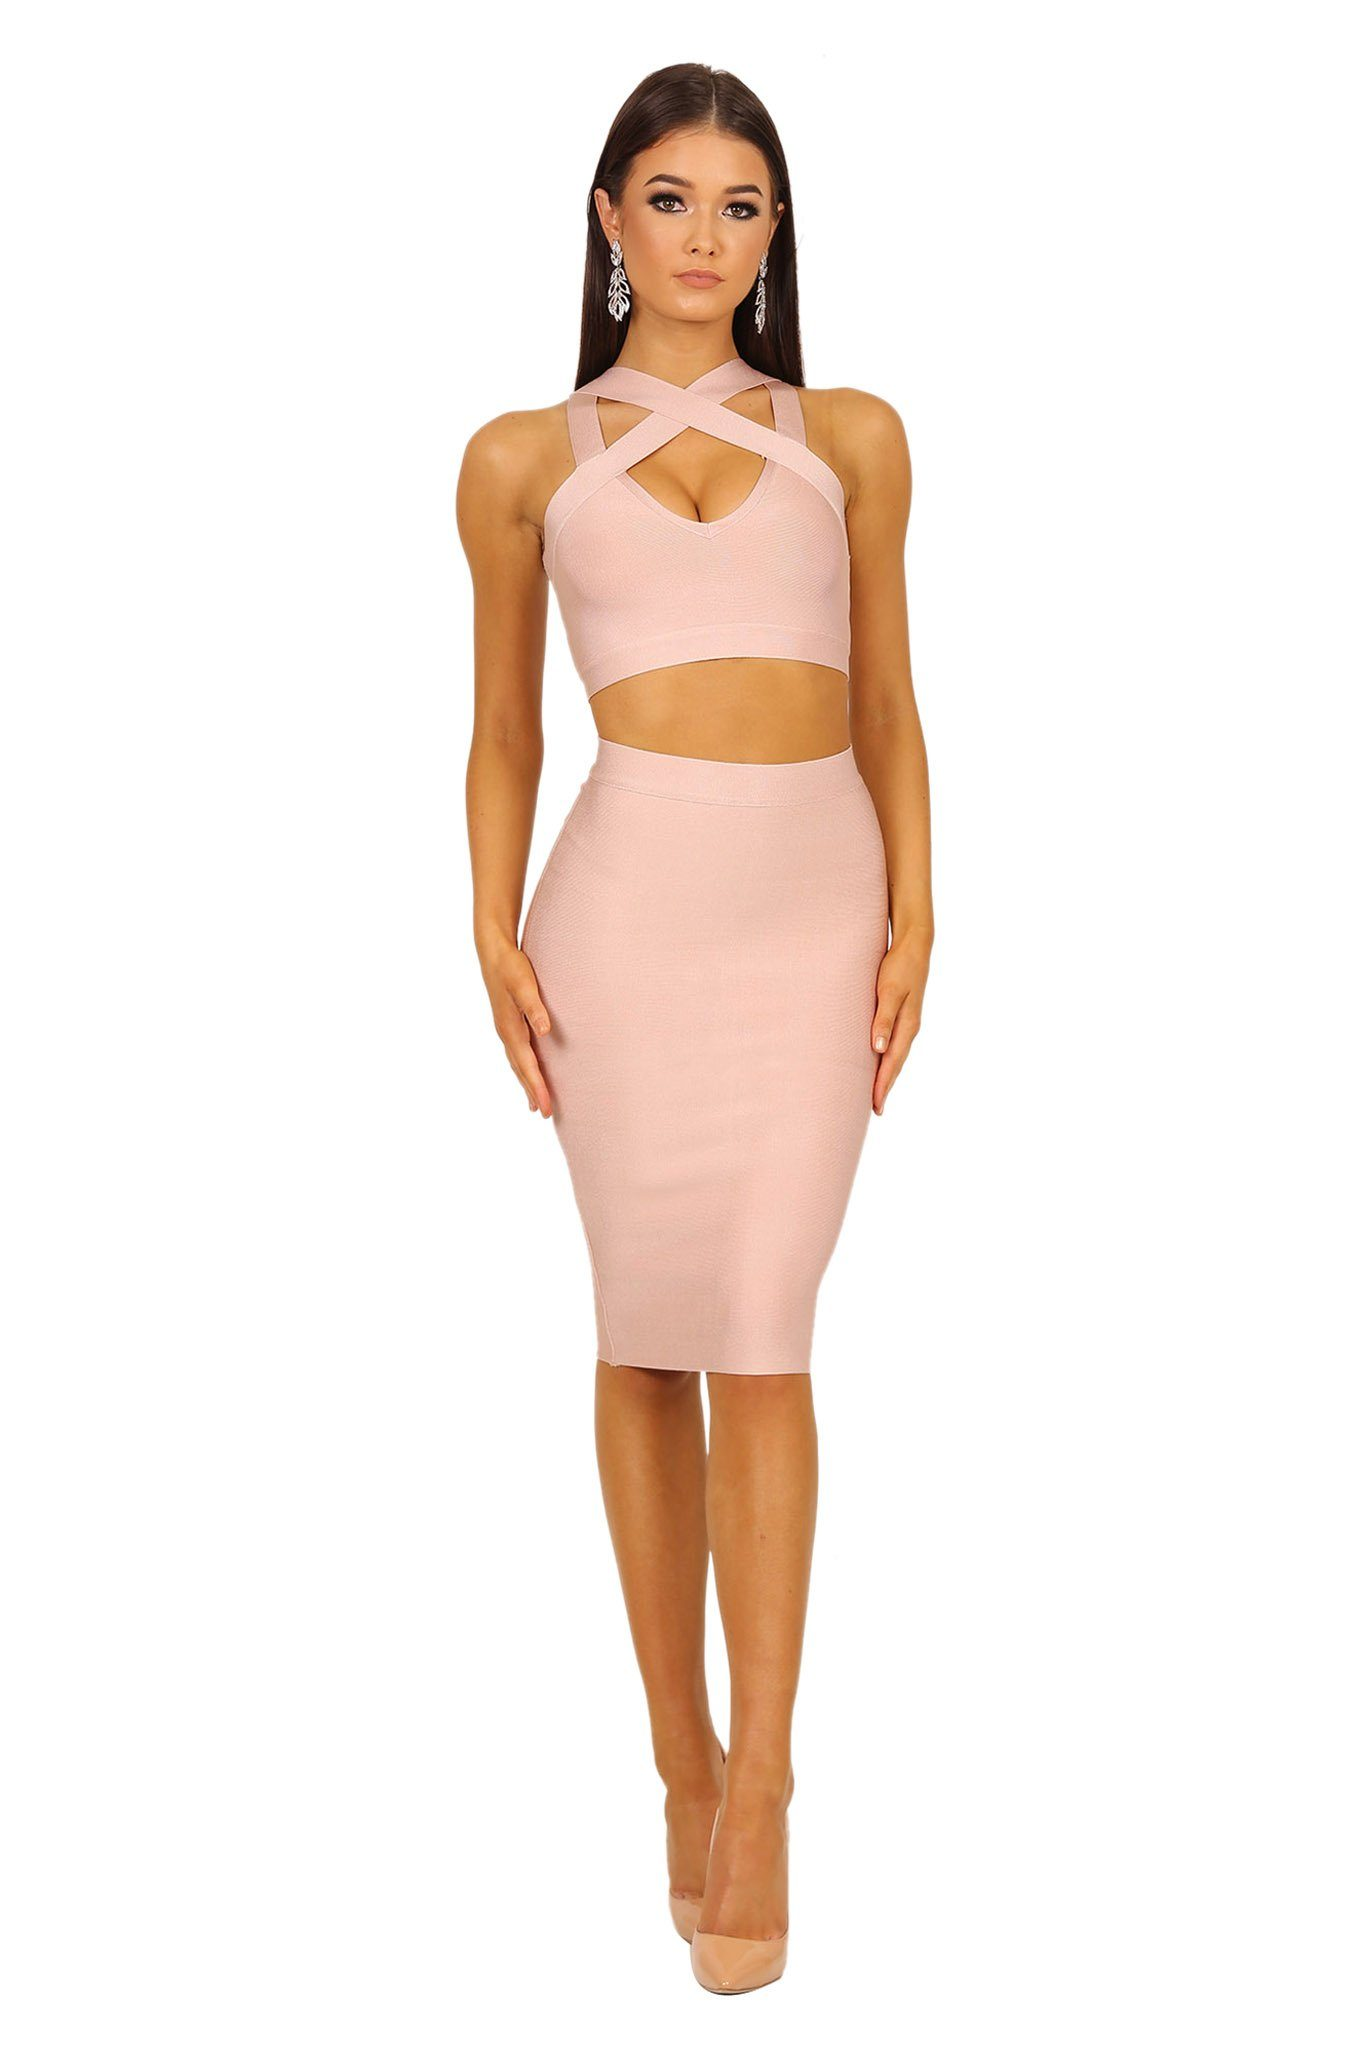 Two-piece bandage set in light pink color including a bandage crop top with peephole at bust and a midi length bandage pencil skirt